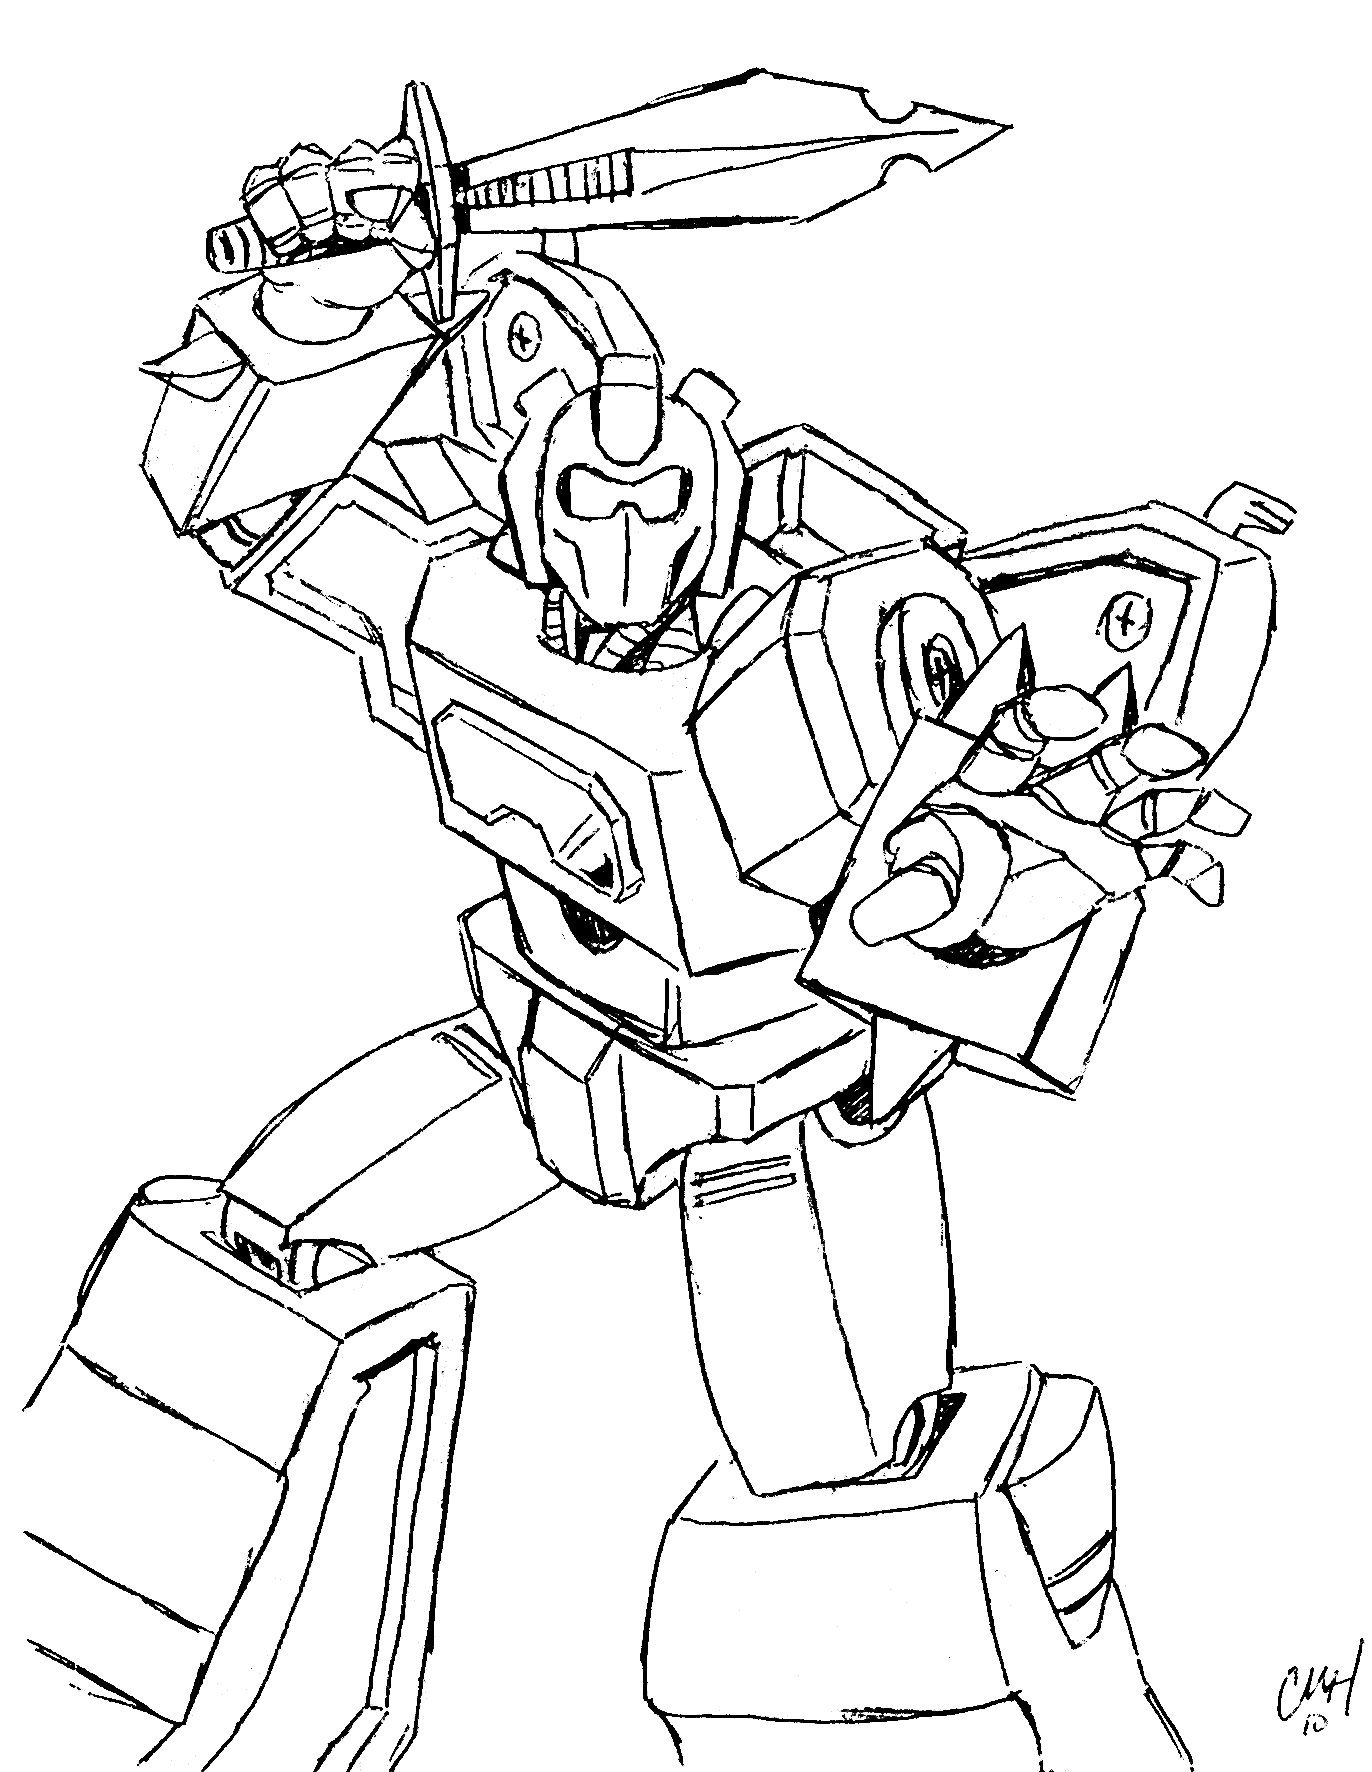 transformers age of extinction Coloring Pages Free Coloring Pages